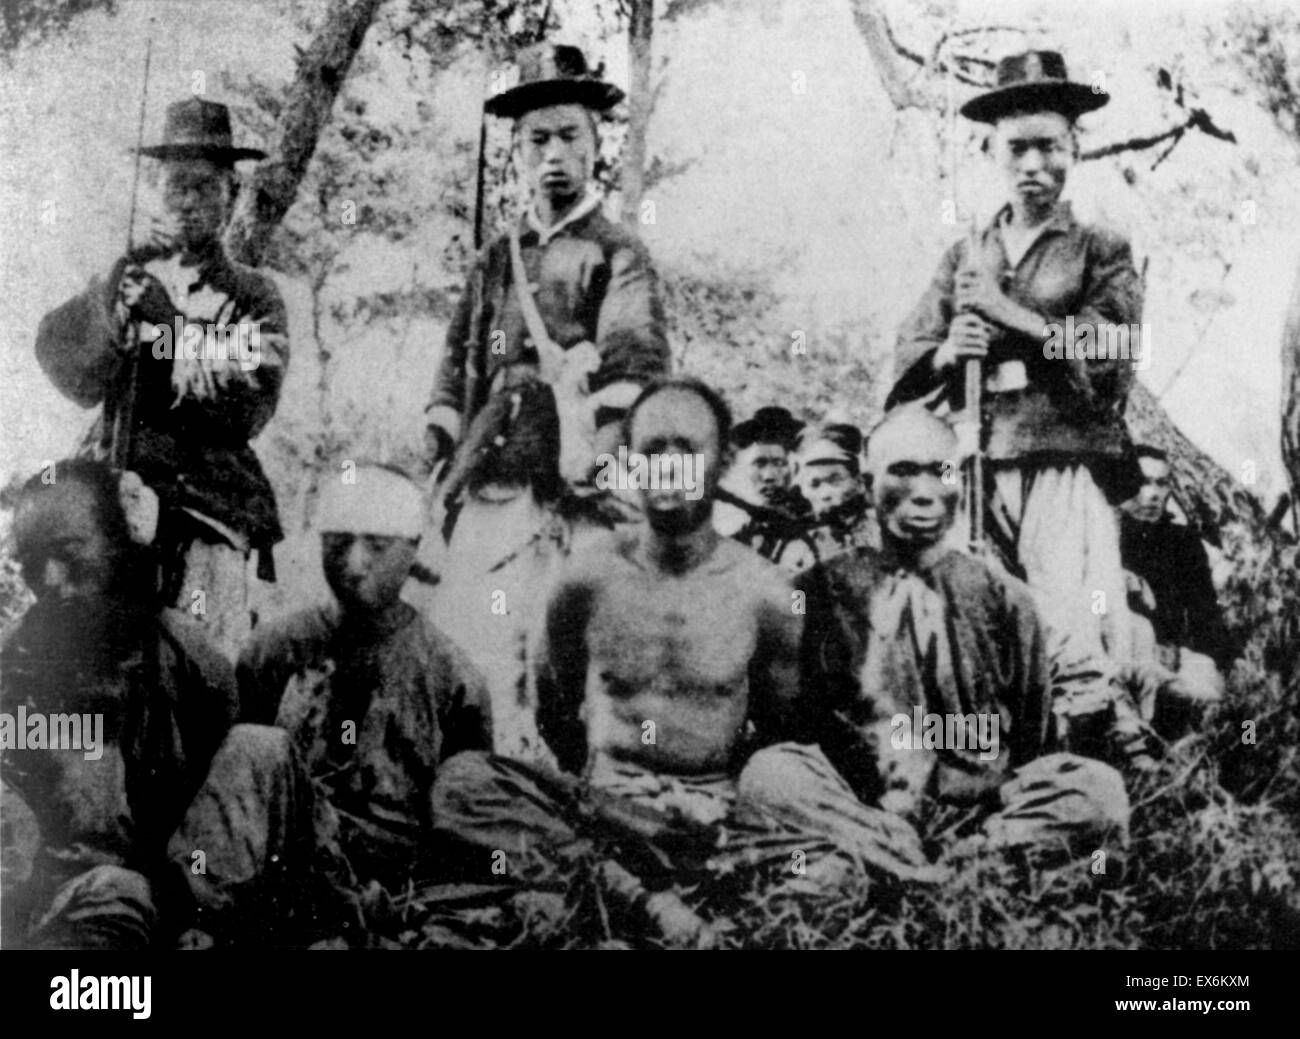 Korean soldiers and Chinese captives in First Sino-Japanese War 1894 to 1895